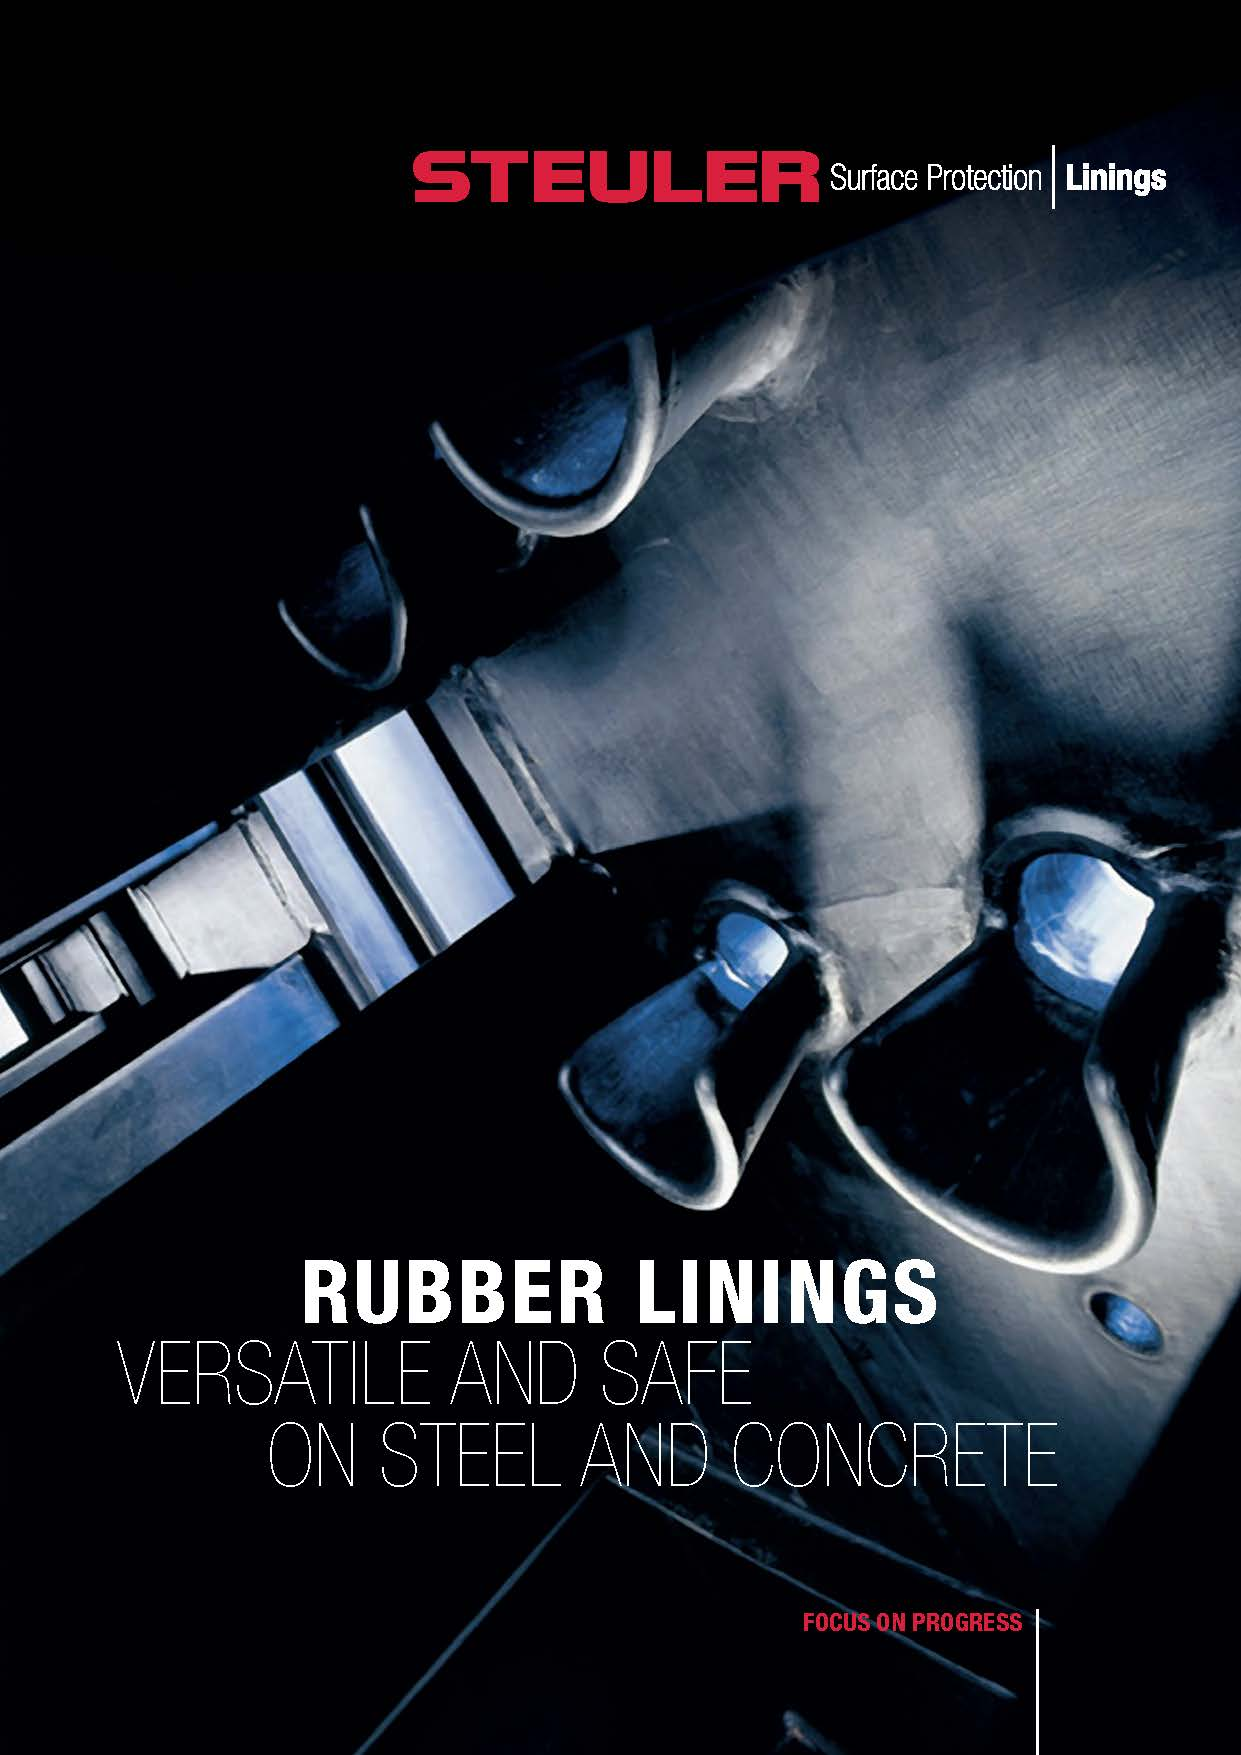 New brochure about rubber linings for corrosion protection from Steuler Linings.